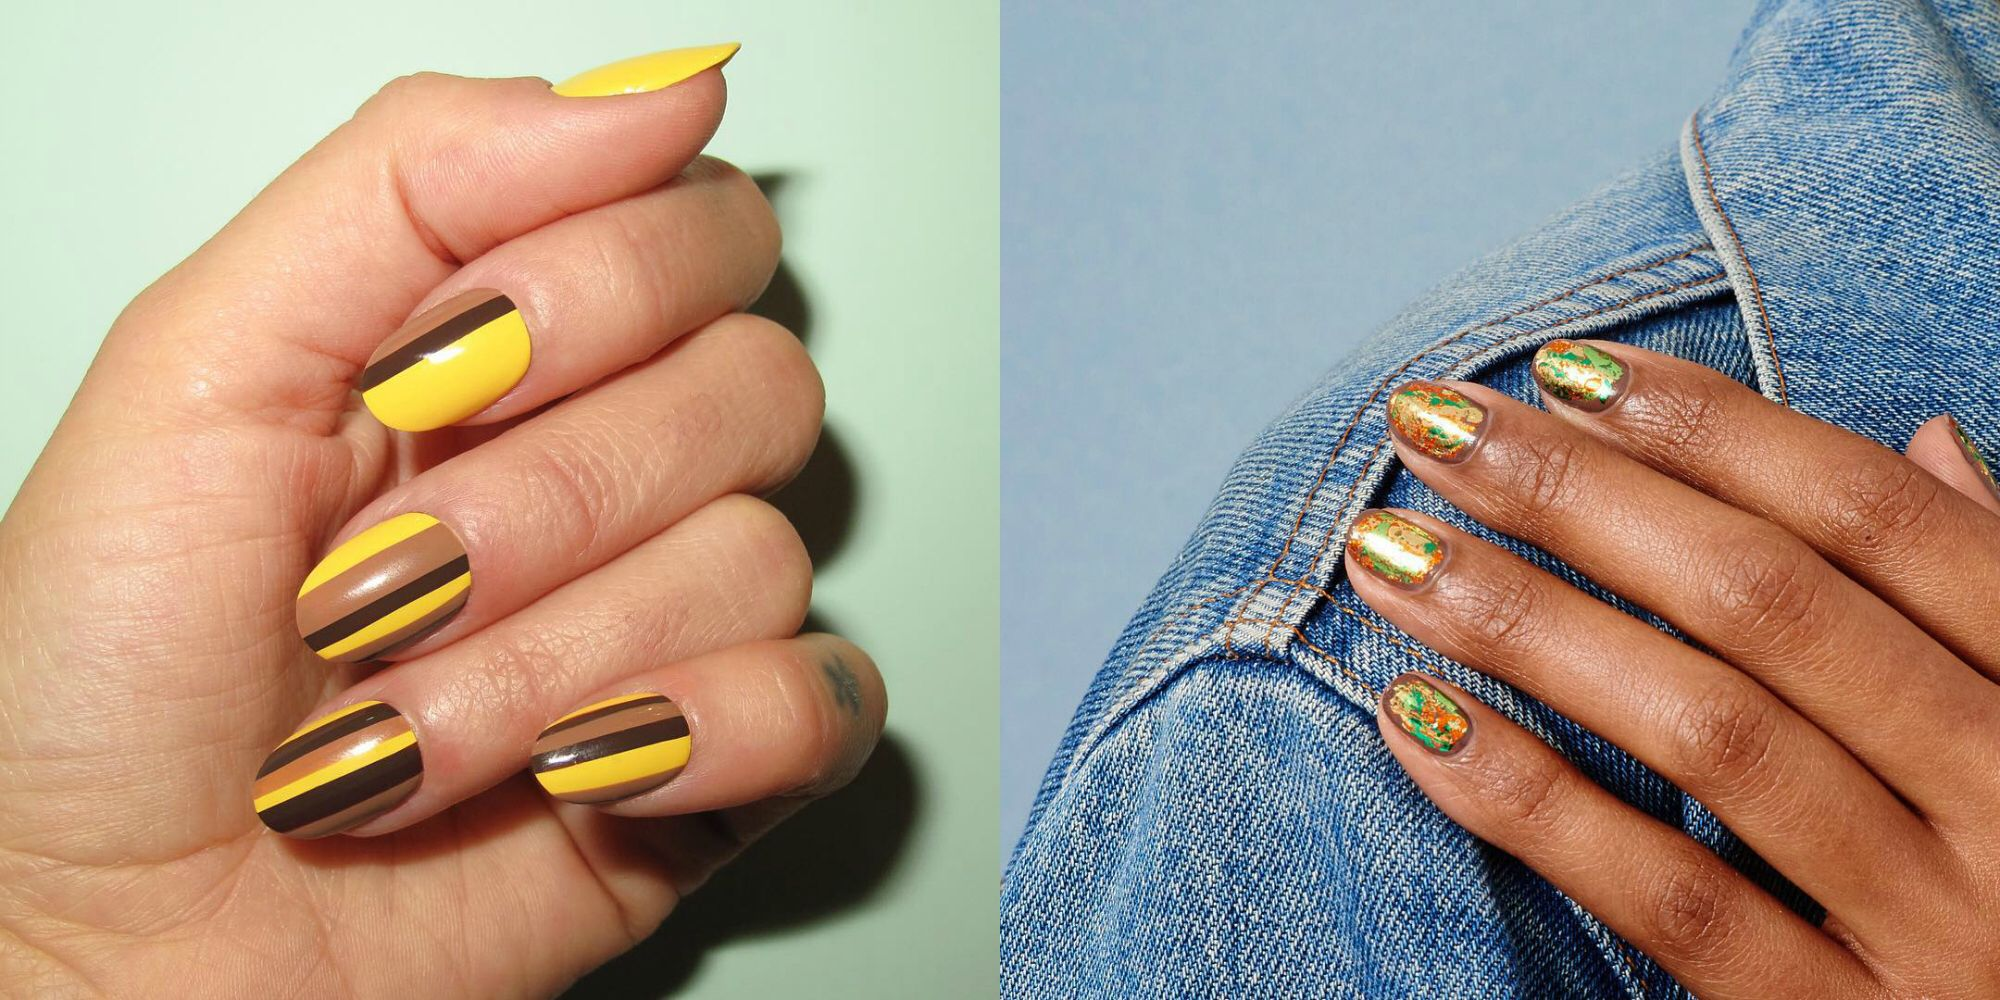 12 New Nail Art ideas For Fall   Autumnal, Neutral and Cozy